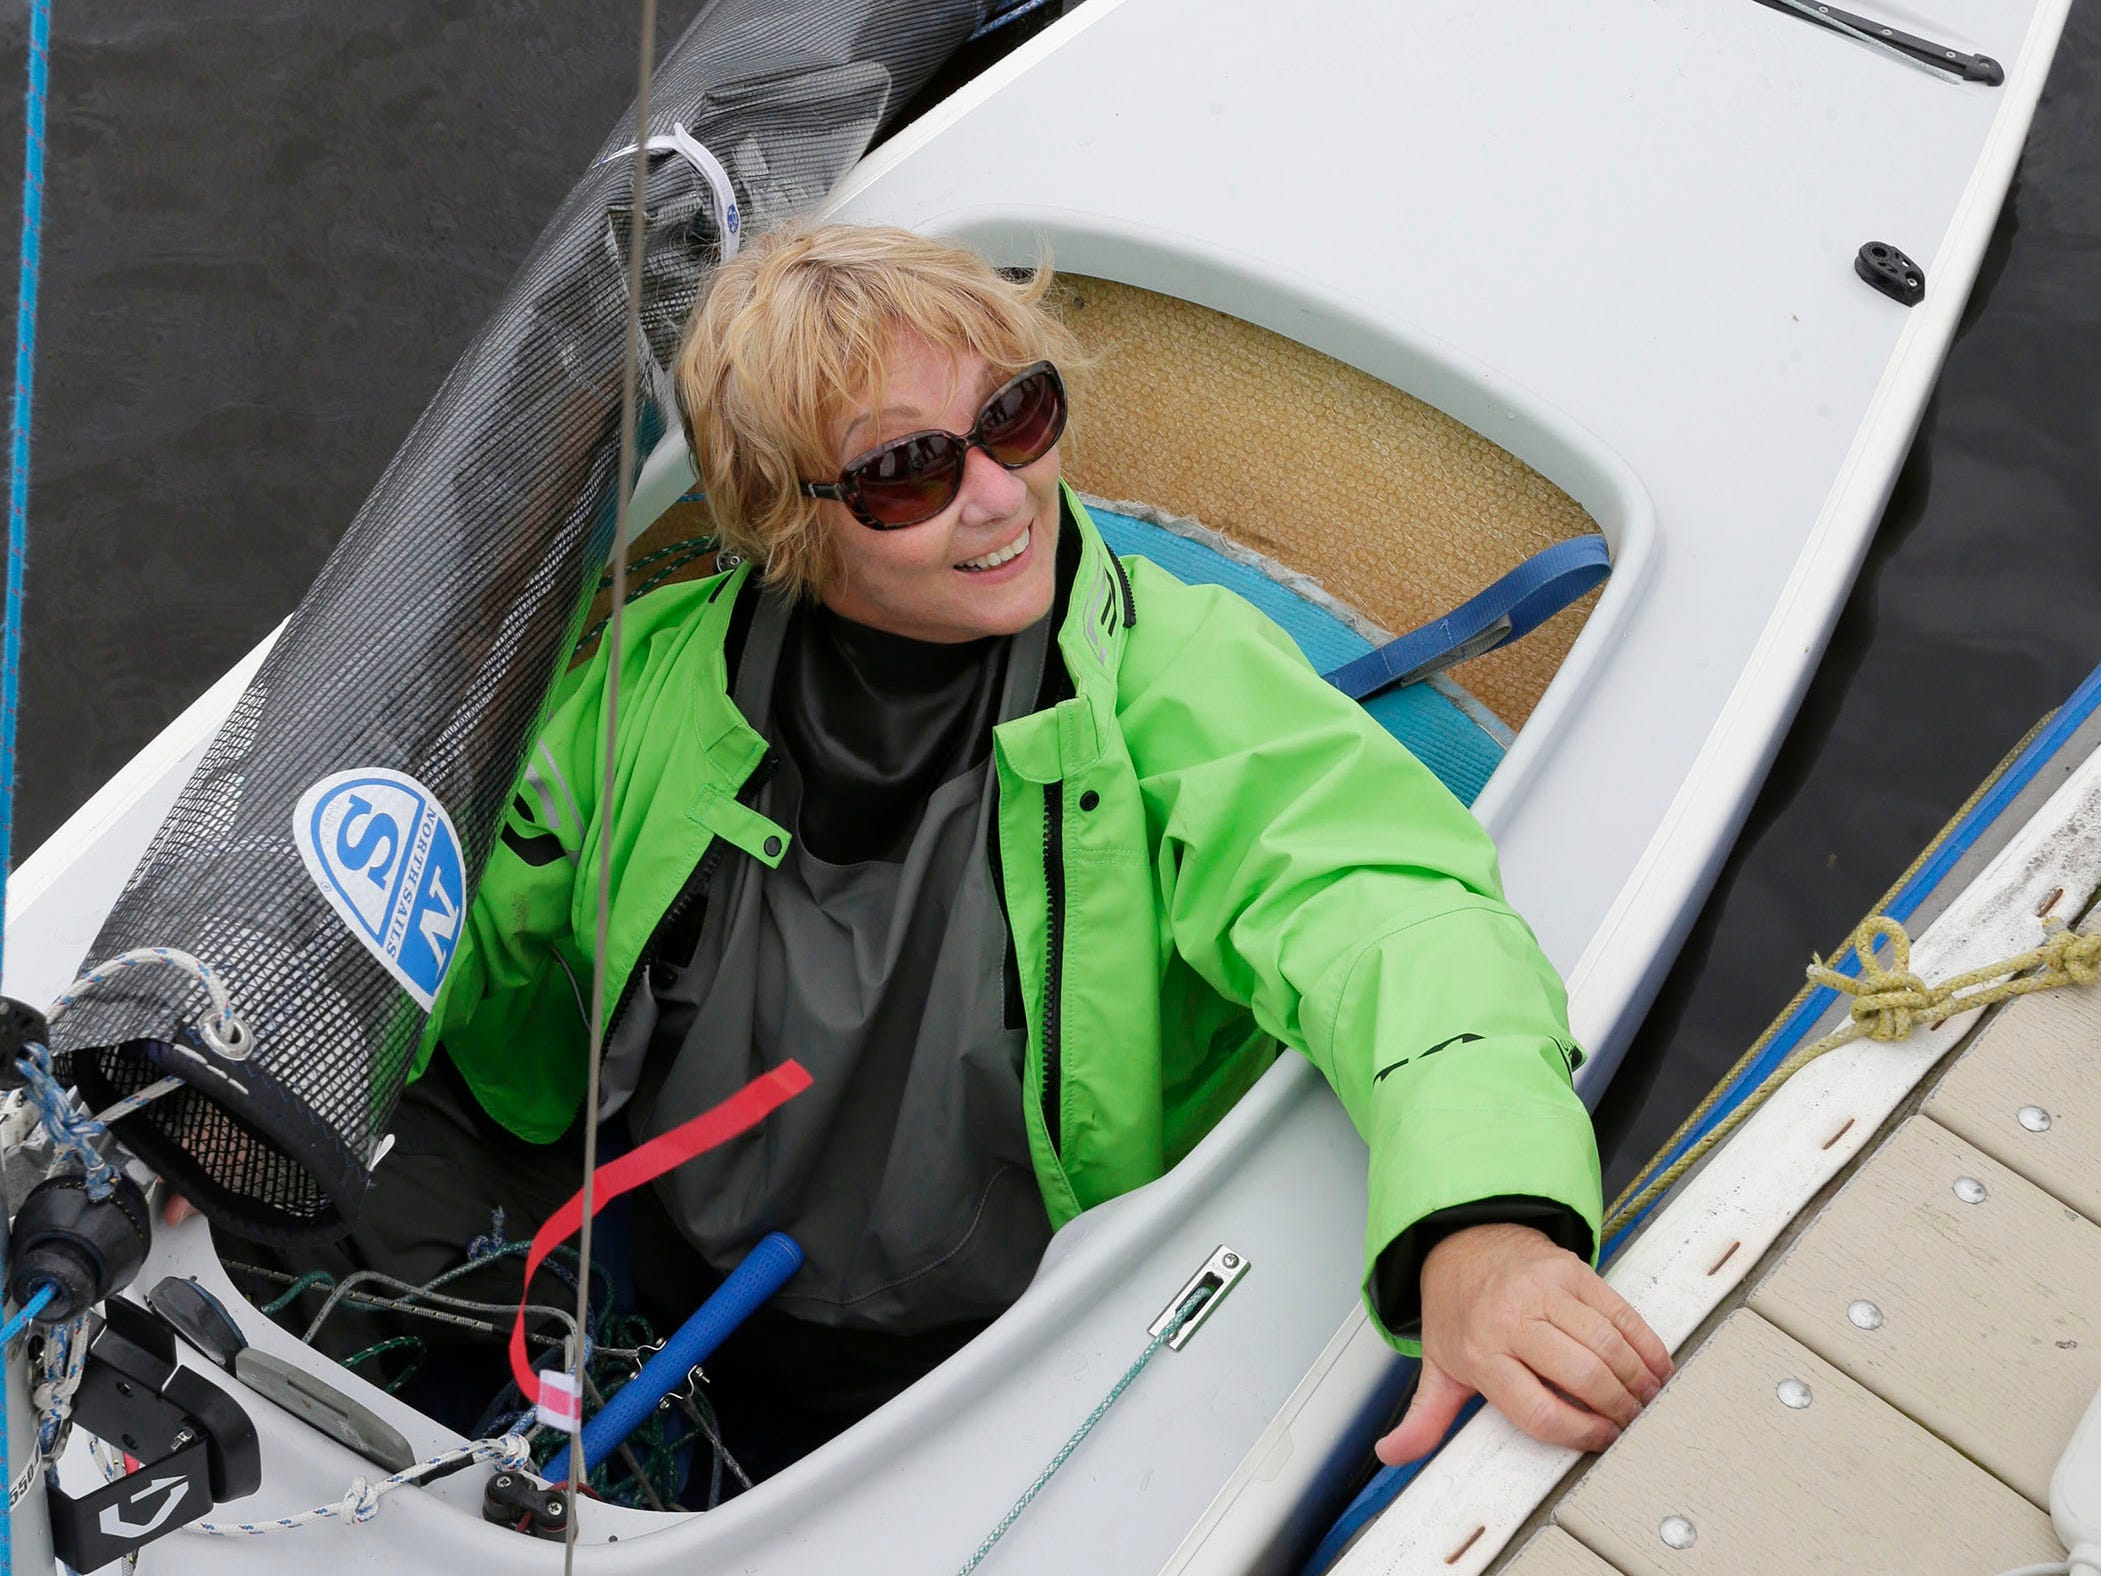 Christine Laballee of Gatineau, Quebec, Canada, is all smiles after being lowered into a sail boat before participating in the Para World Sailing Championships, Tuesday, September 18, 2018, in Sheboygan, Wis.